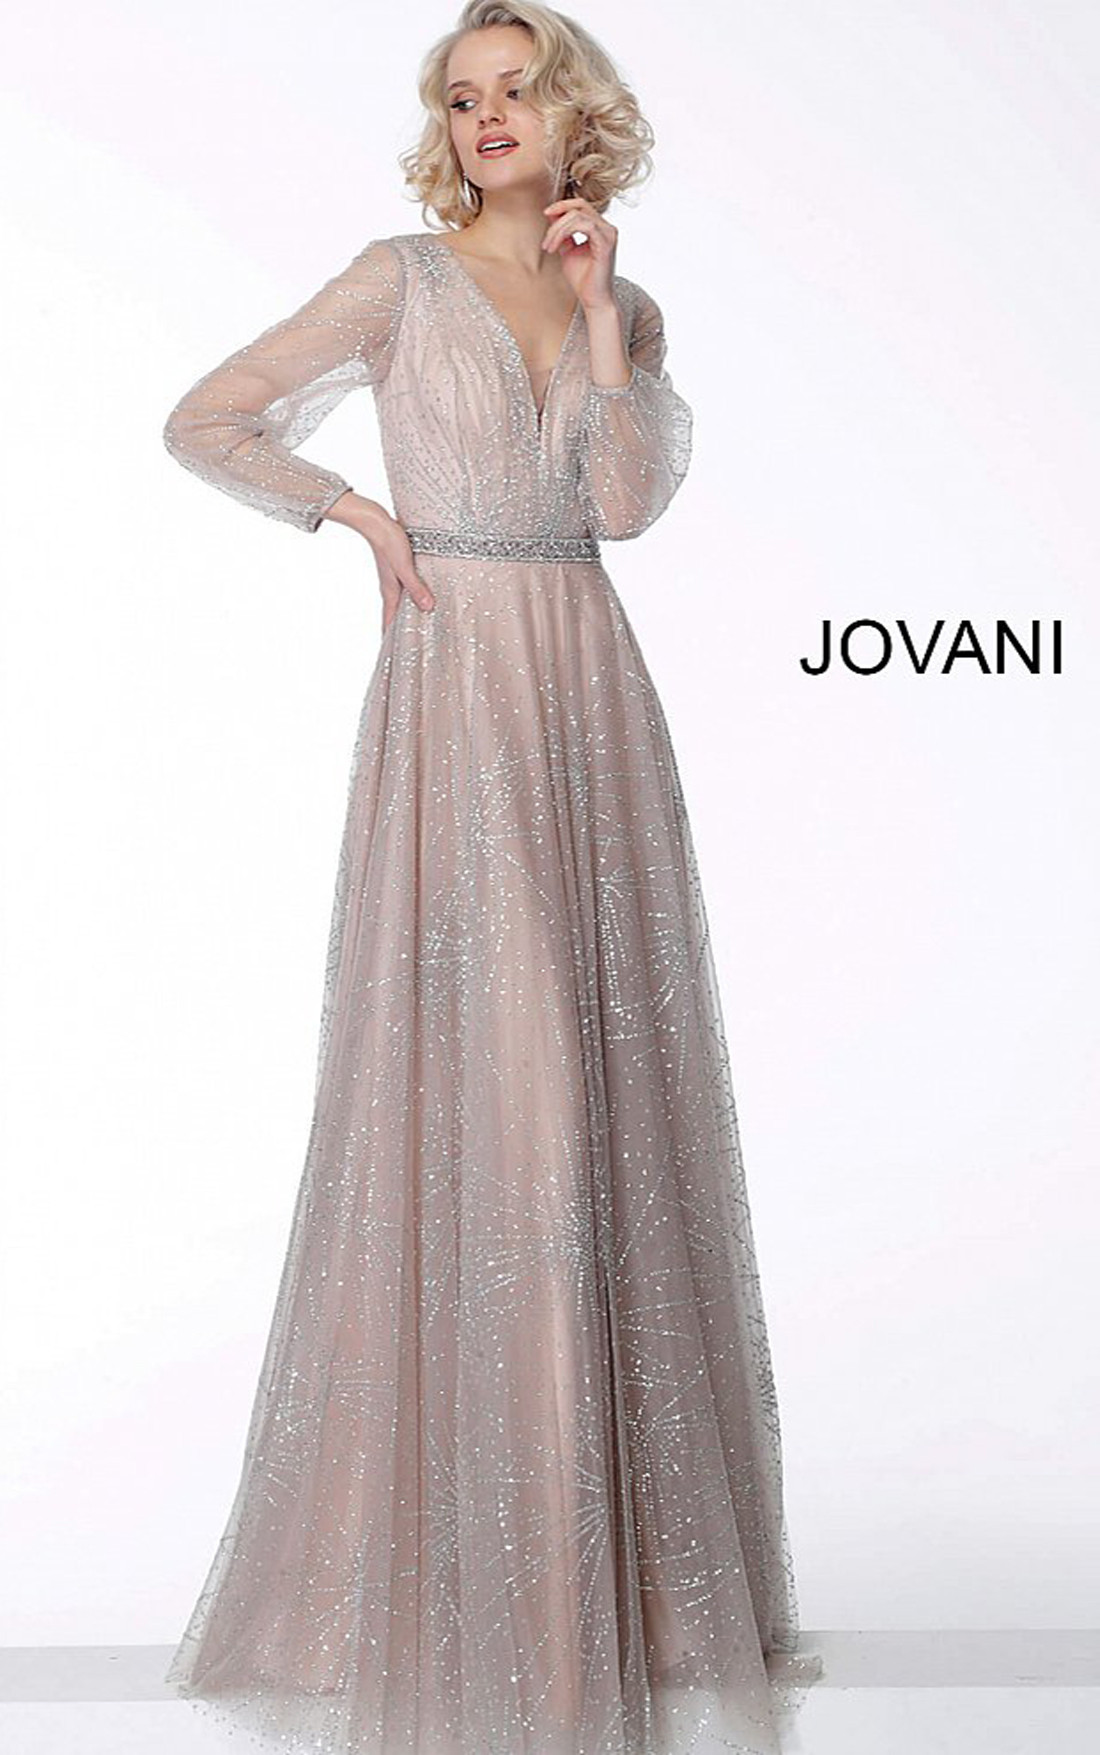 Jovani - Nude Glitter Long Sleeve Evening Dress (65658)